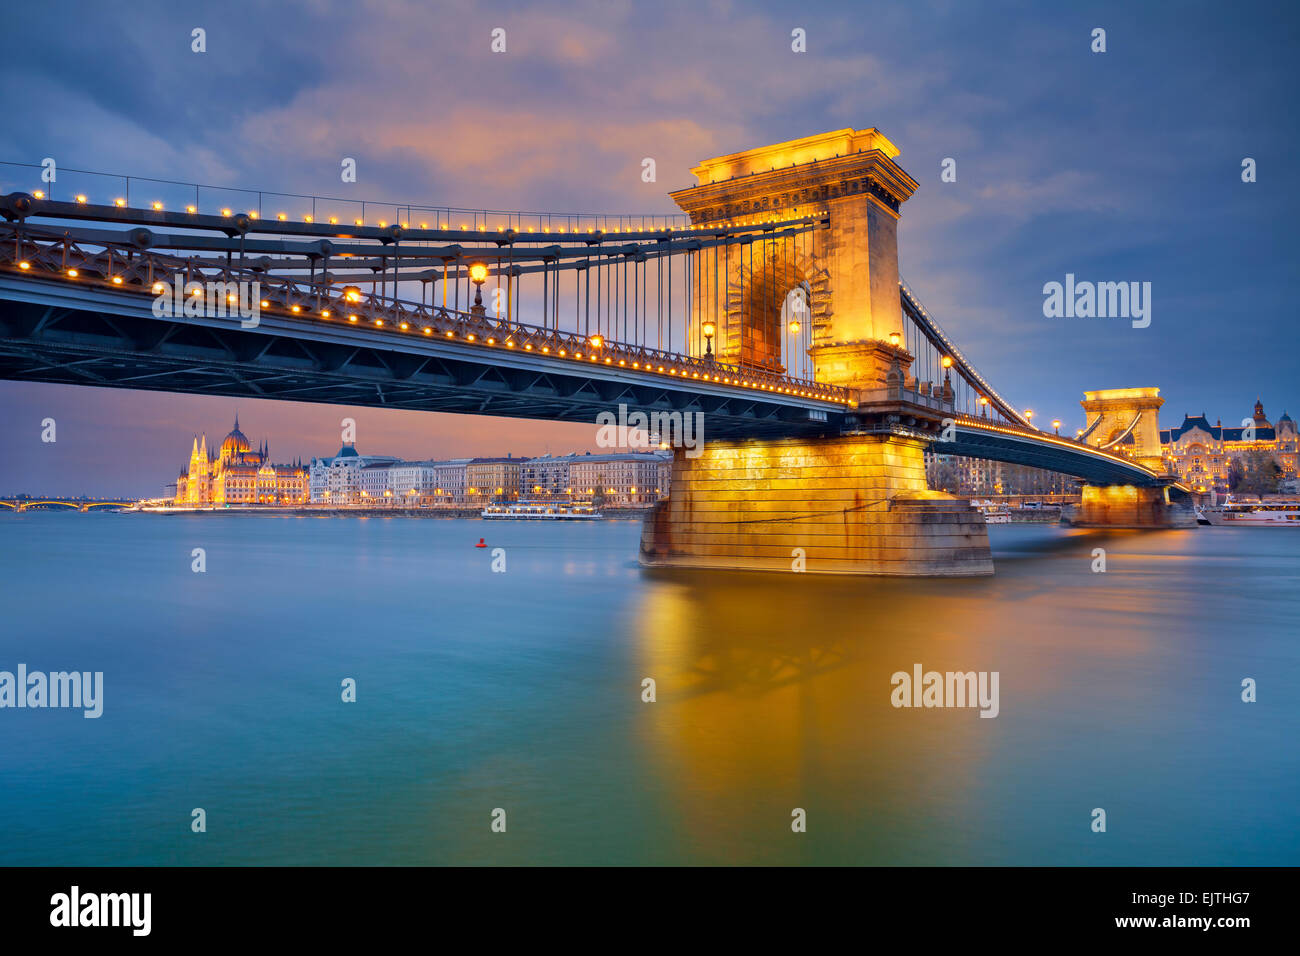 Budapest. Image of Budapest, capital city of Hungary, during twilight blue hour. - Stock Image